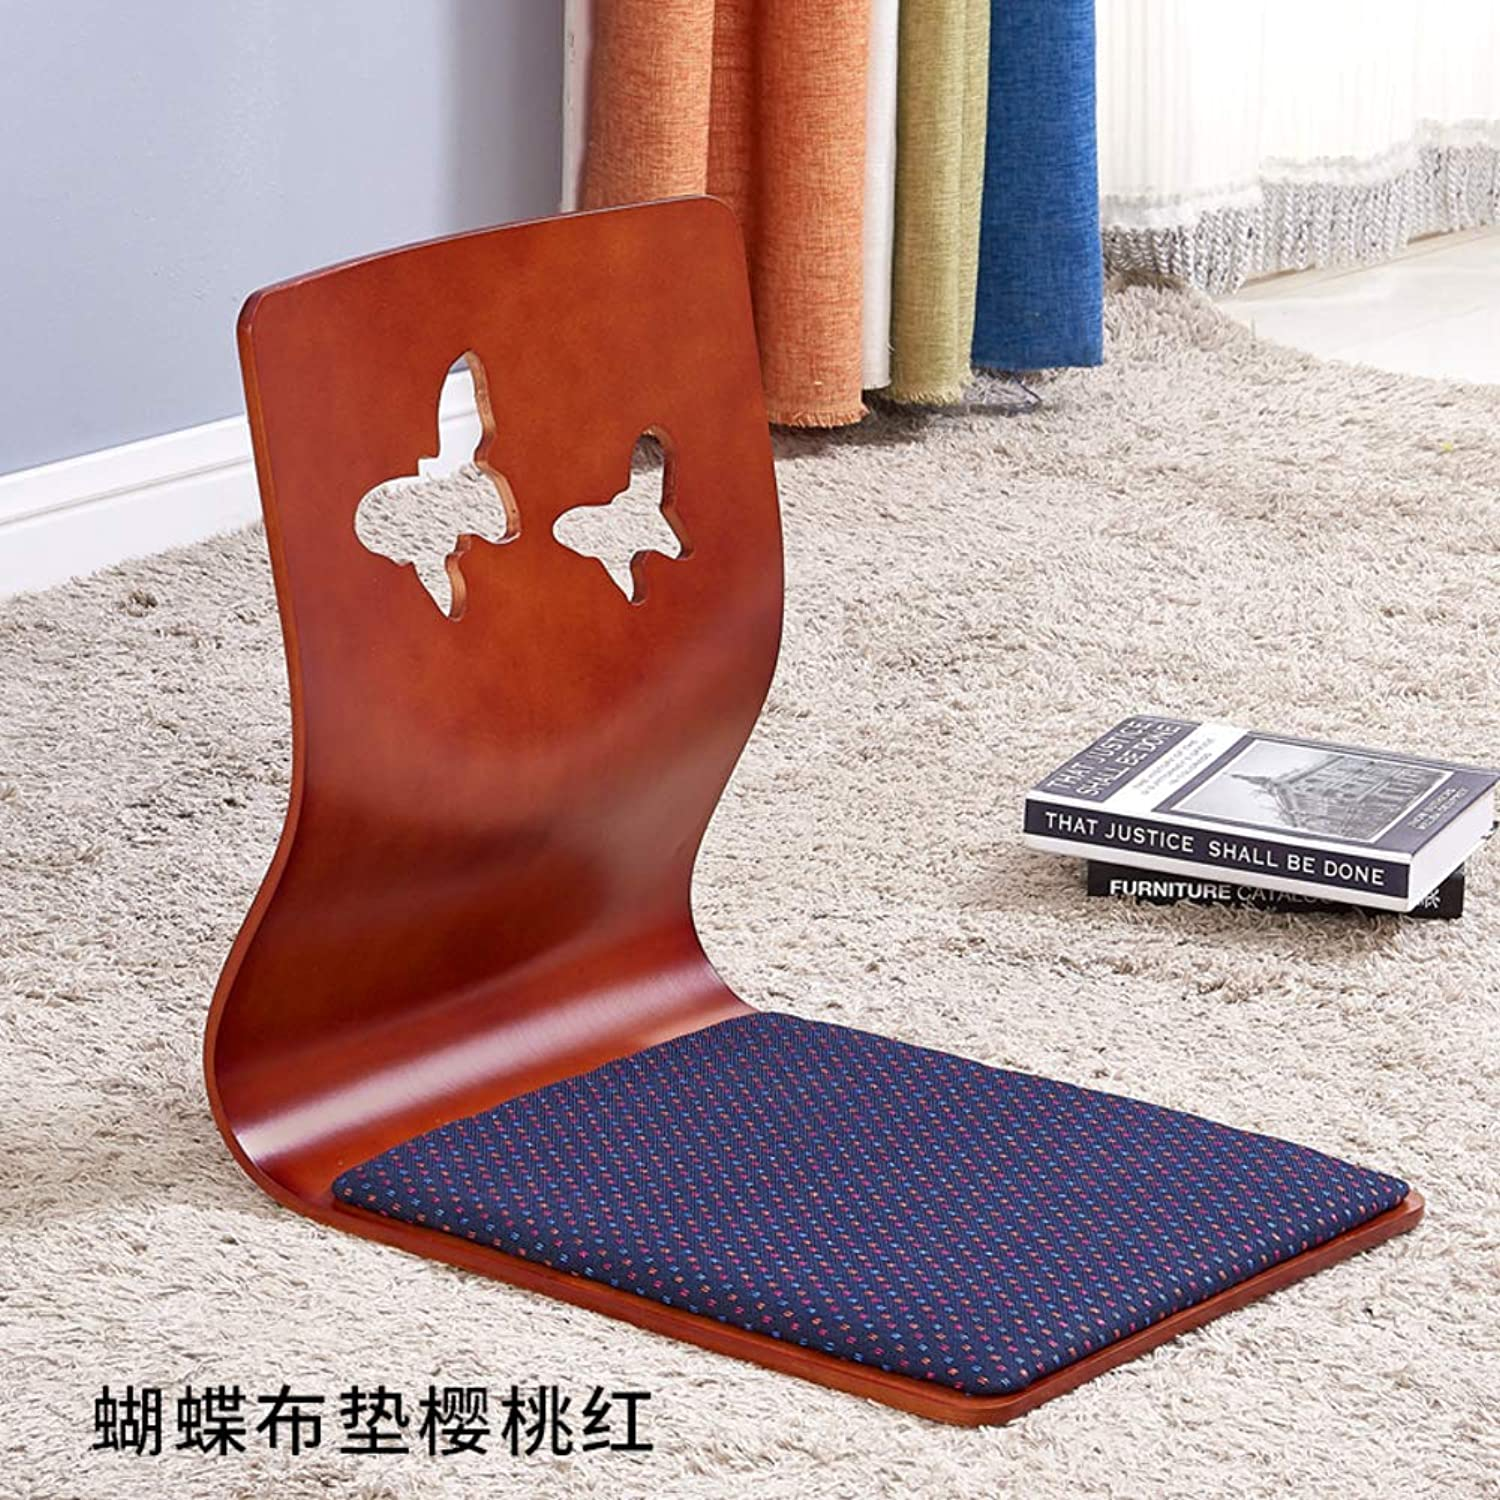 Padded Floor Chair,Tatami Lazy Adjustable Cushioned Recliner Portable Video-Gaming Reading Meditation Chair -I